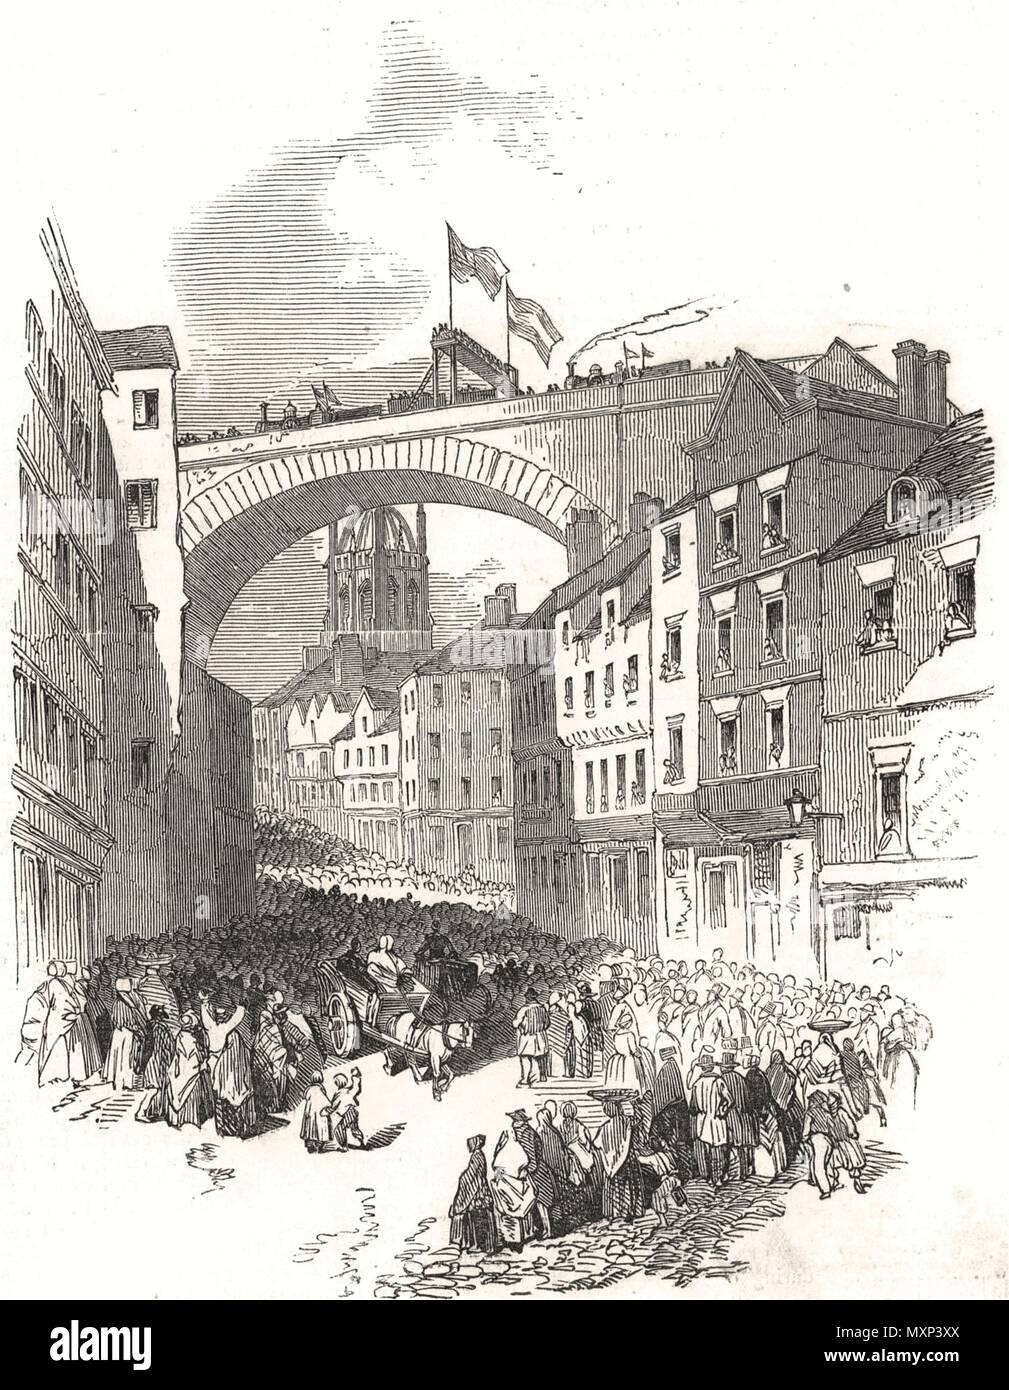 Stupendous railway arch over Dean-Street, Newcastle-upon-Tyne 1848. The Illustrated London News - Stock Image